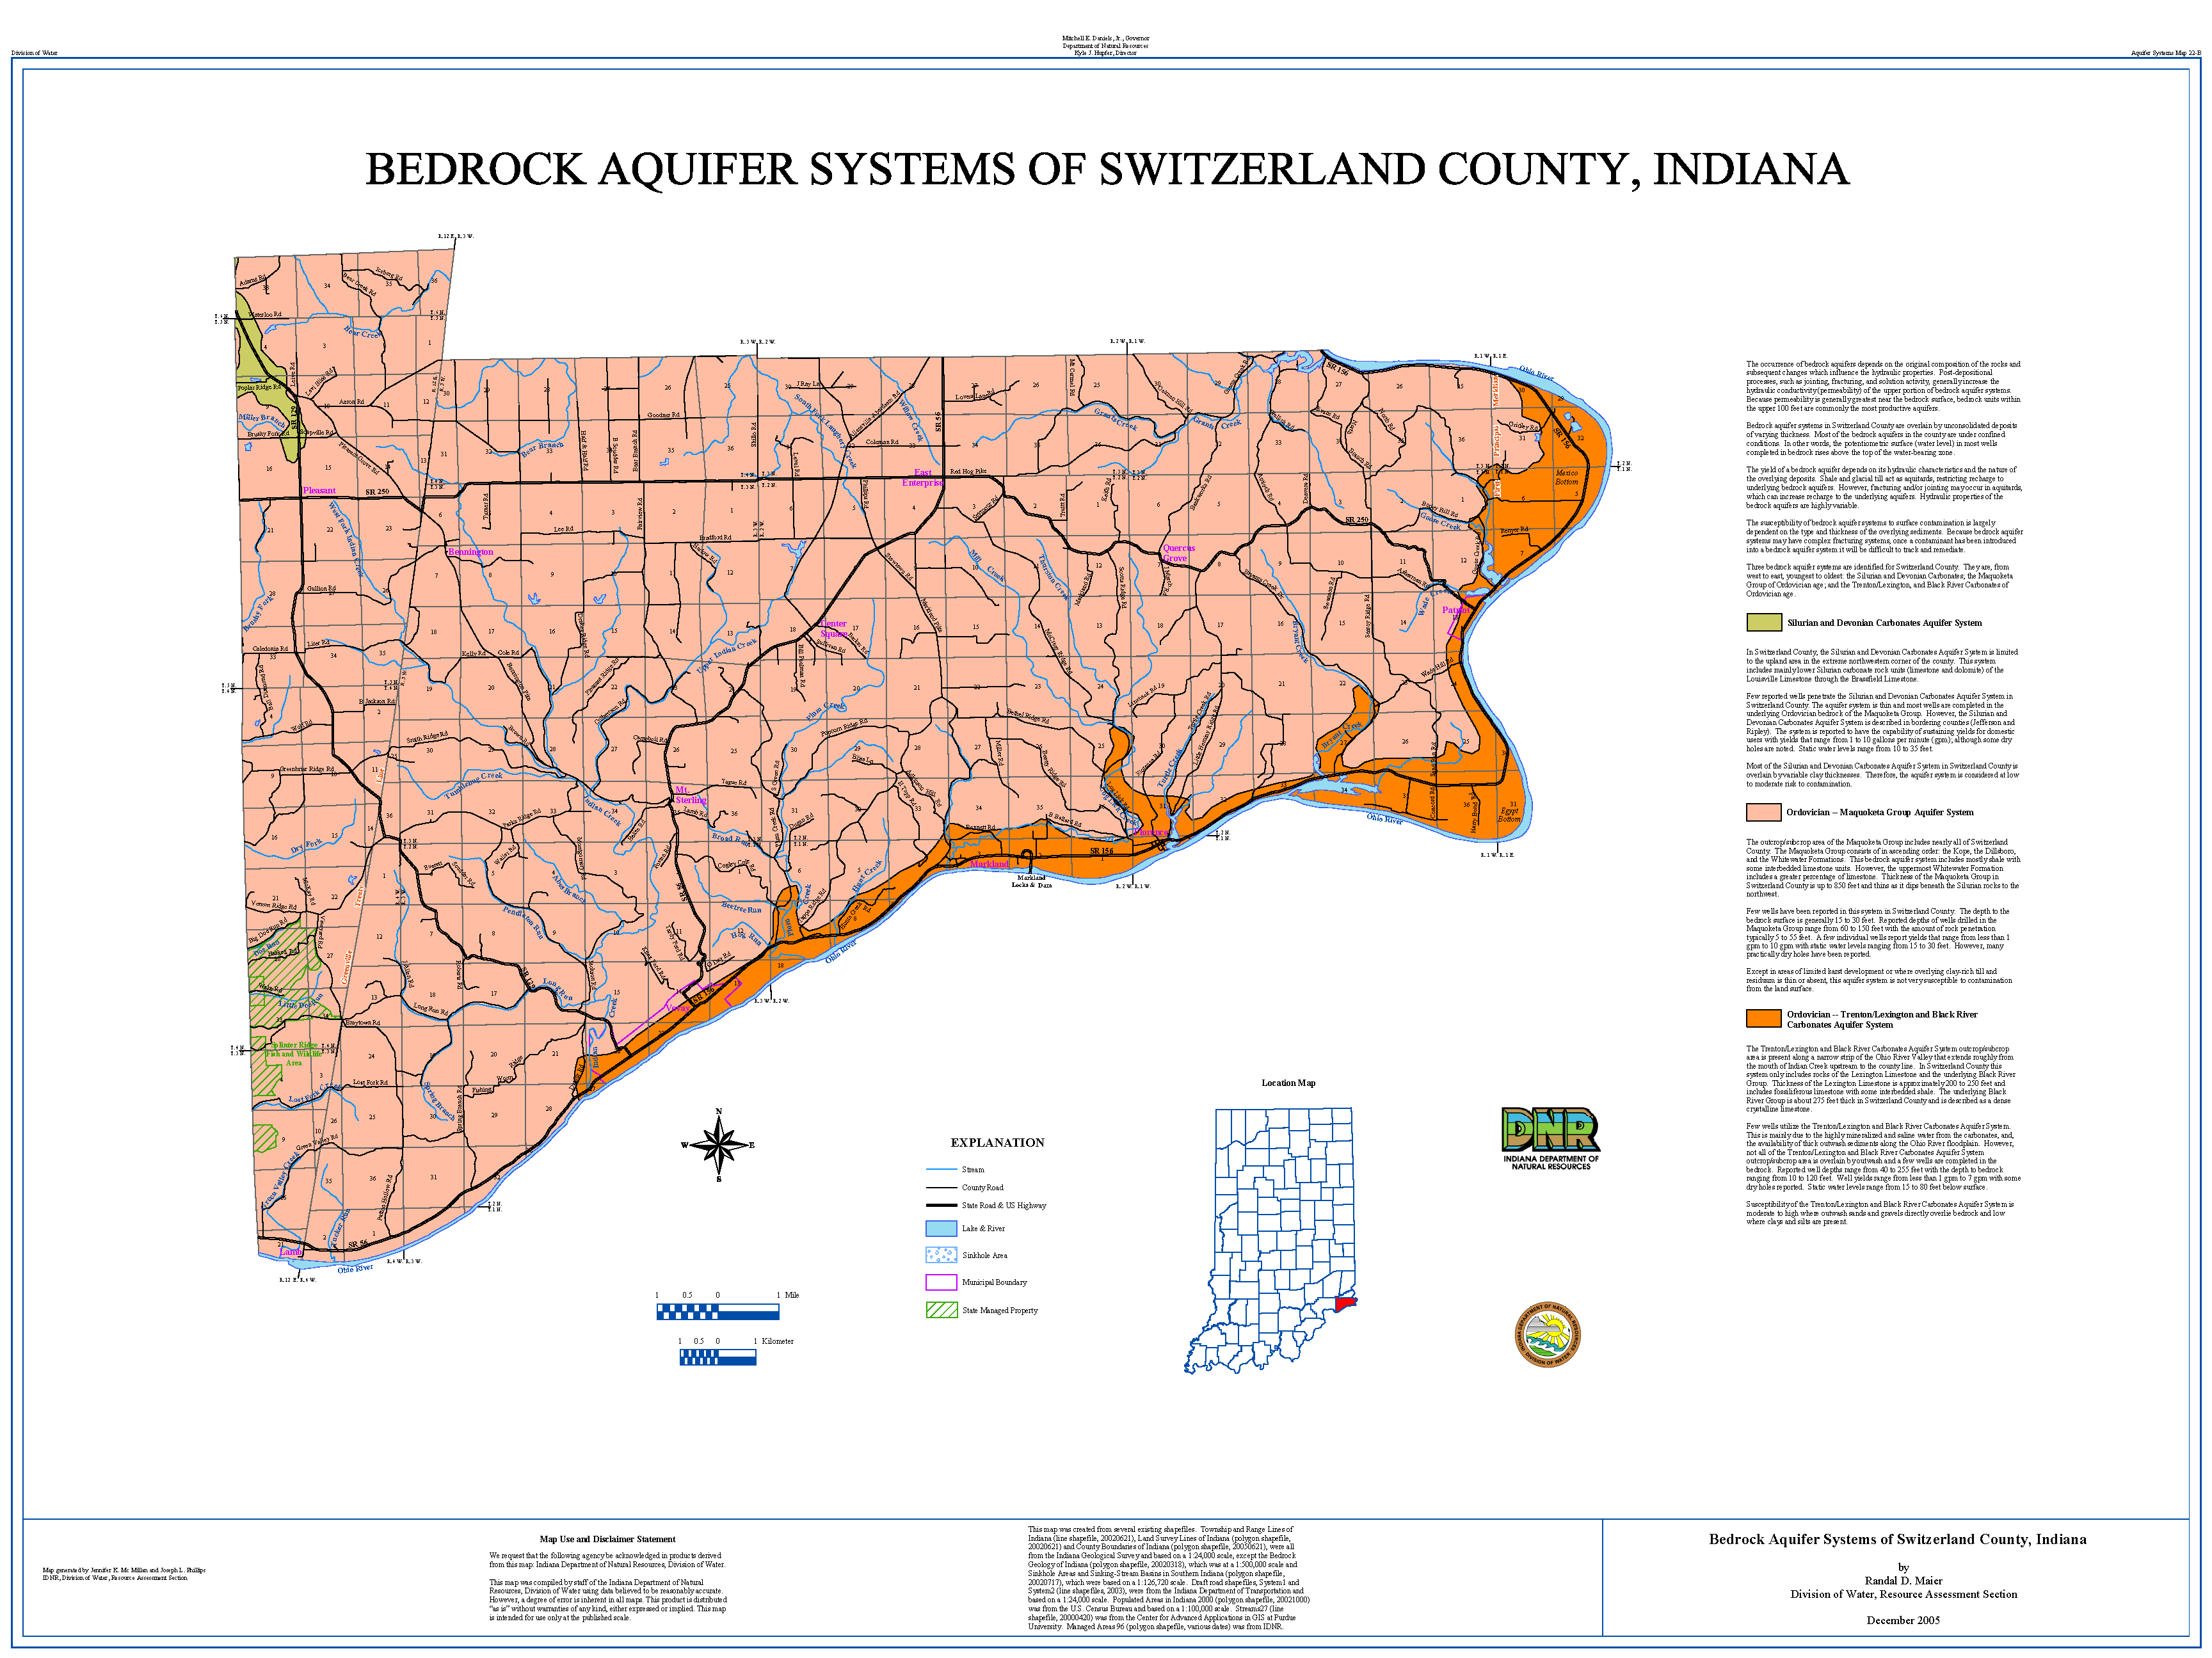 switzerland county indiana map Dnr Aquifer Systems Maps 22 A And 22 B Unconsolidated And